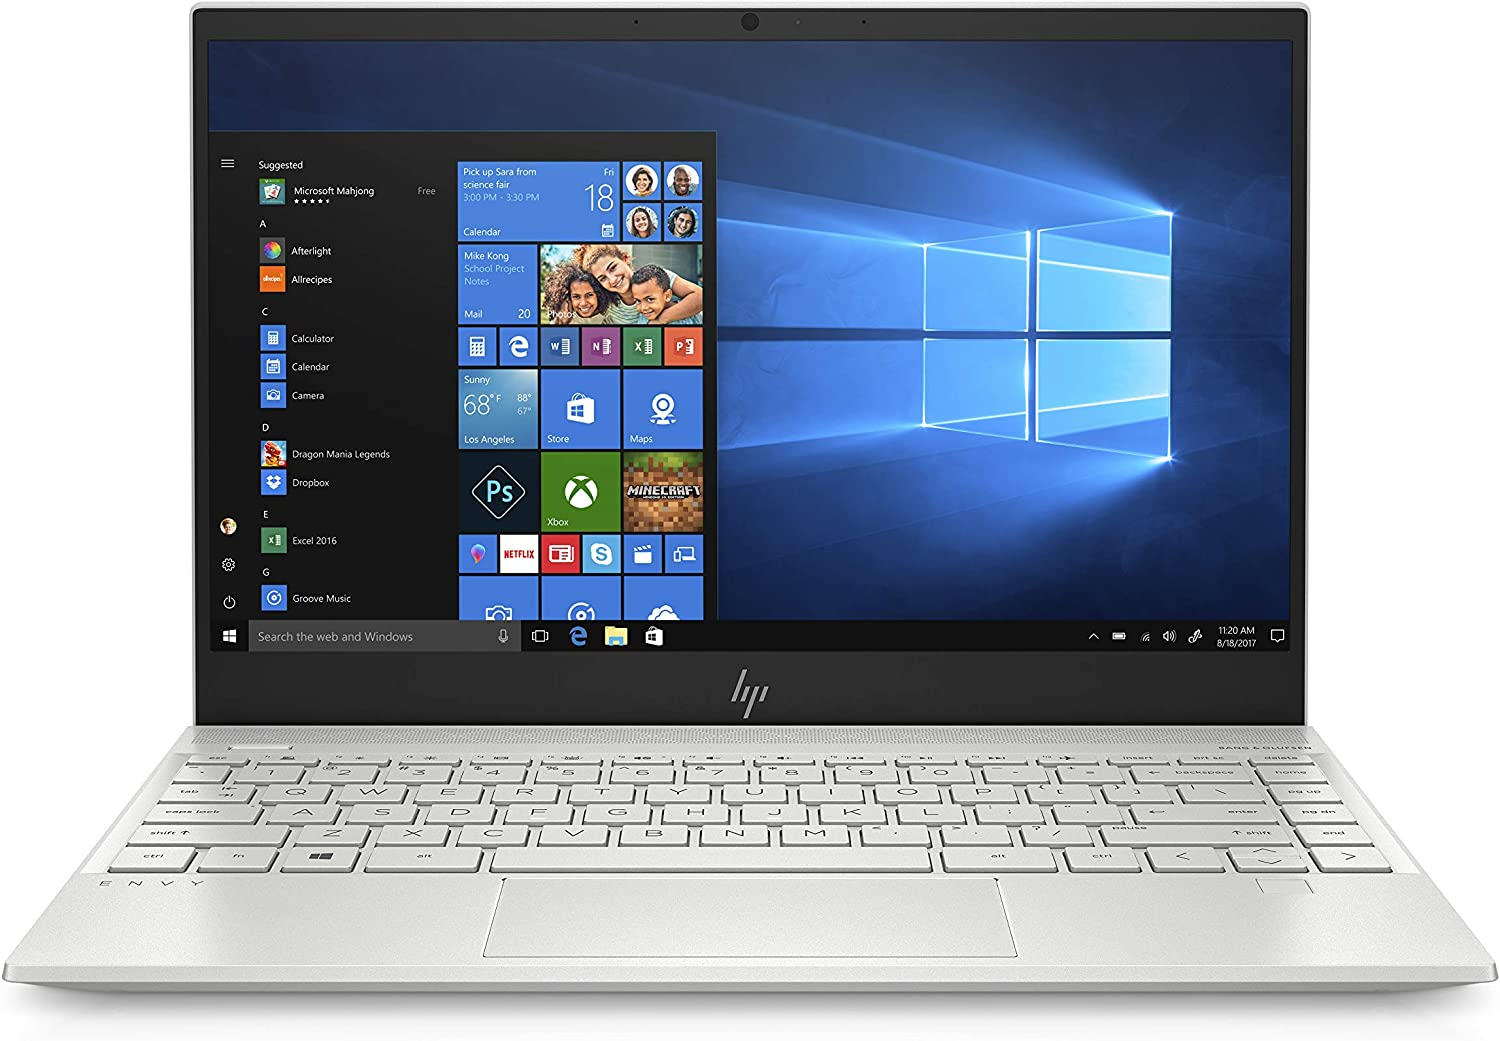 "HP Envy 13"" Thin Laptop W/ Fingerprint Reader, FHD Touchscreen, Intel Core i7-8565U, 8GB SDRAM, 256GB SSD, Windows 10 Home (13-aq0005nr, Natural Silver)"